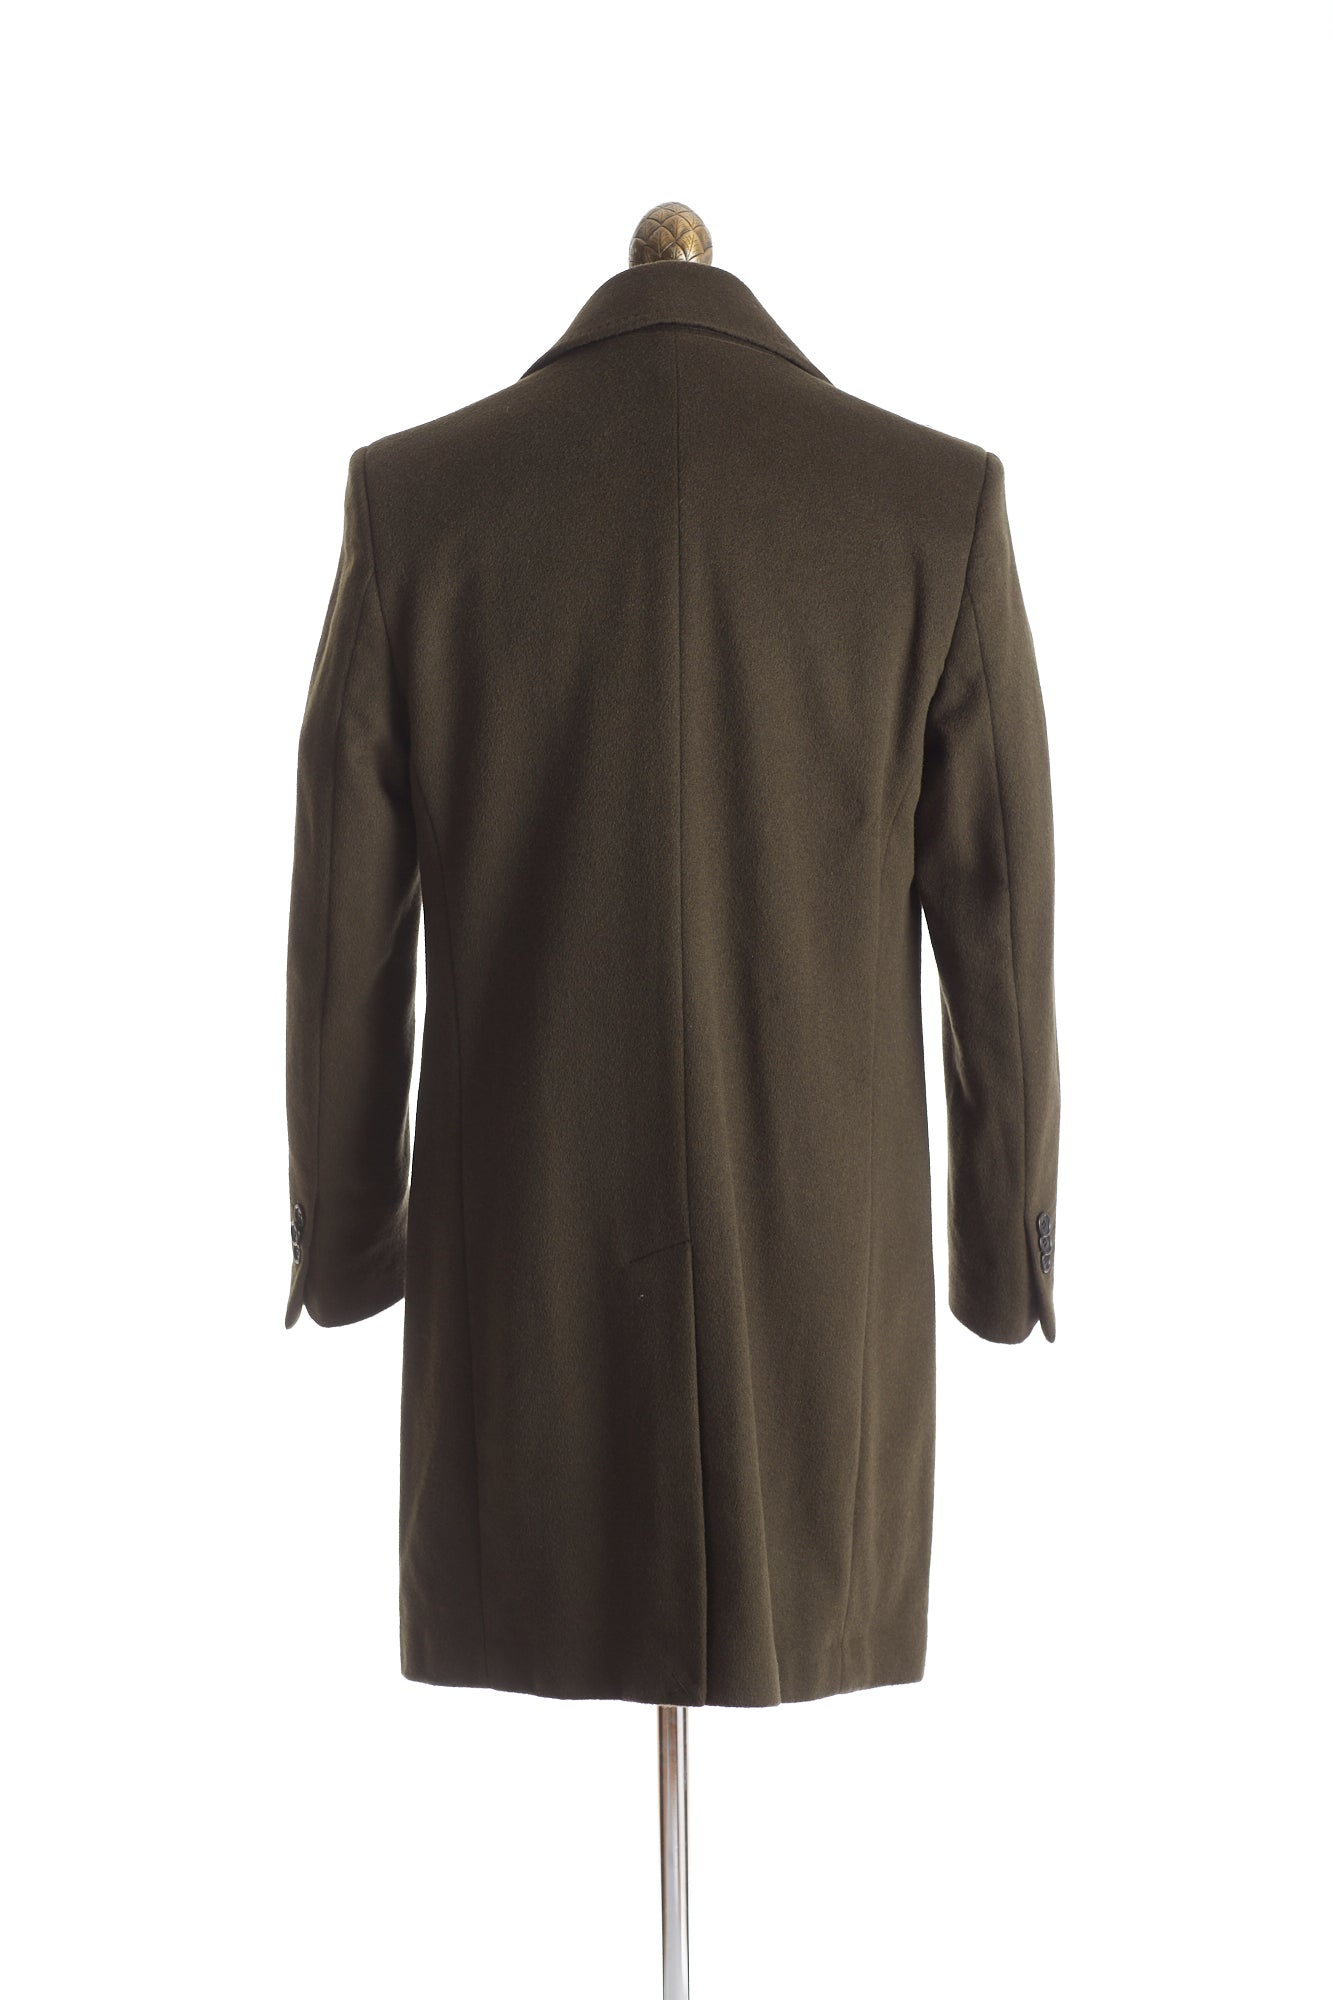 SAND Olive Green Wool-Cashmere Topcoat Back